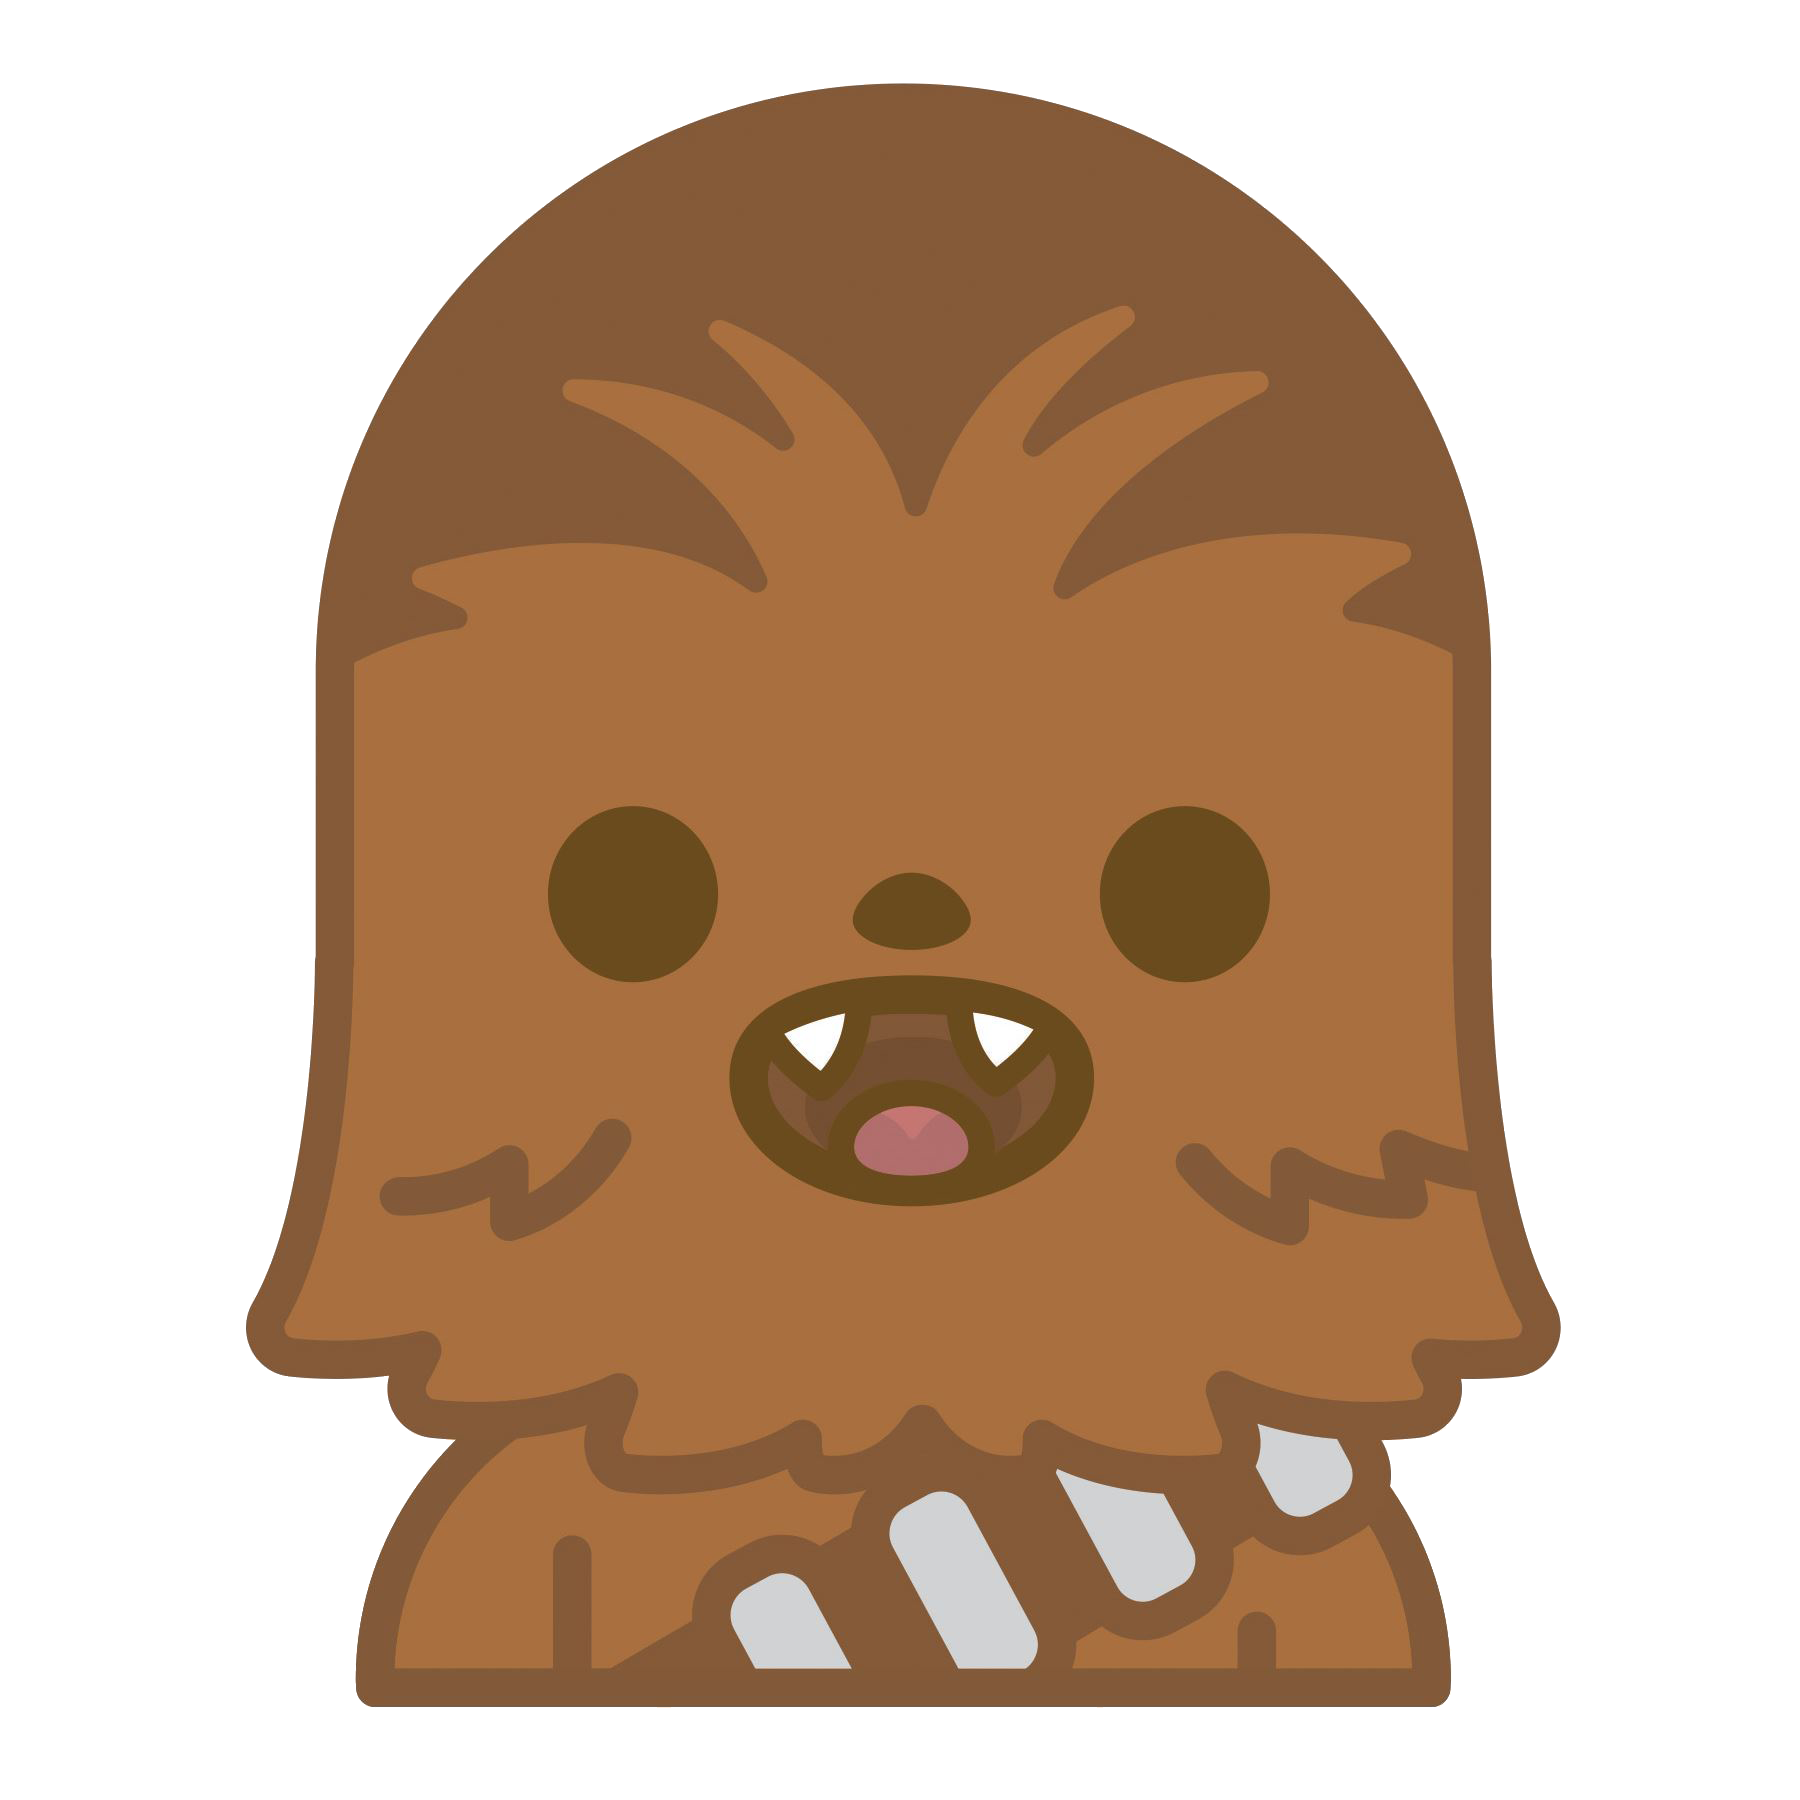 Chewbacca svg. Vector freeuse download